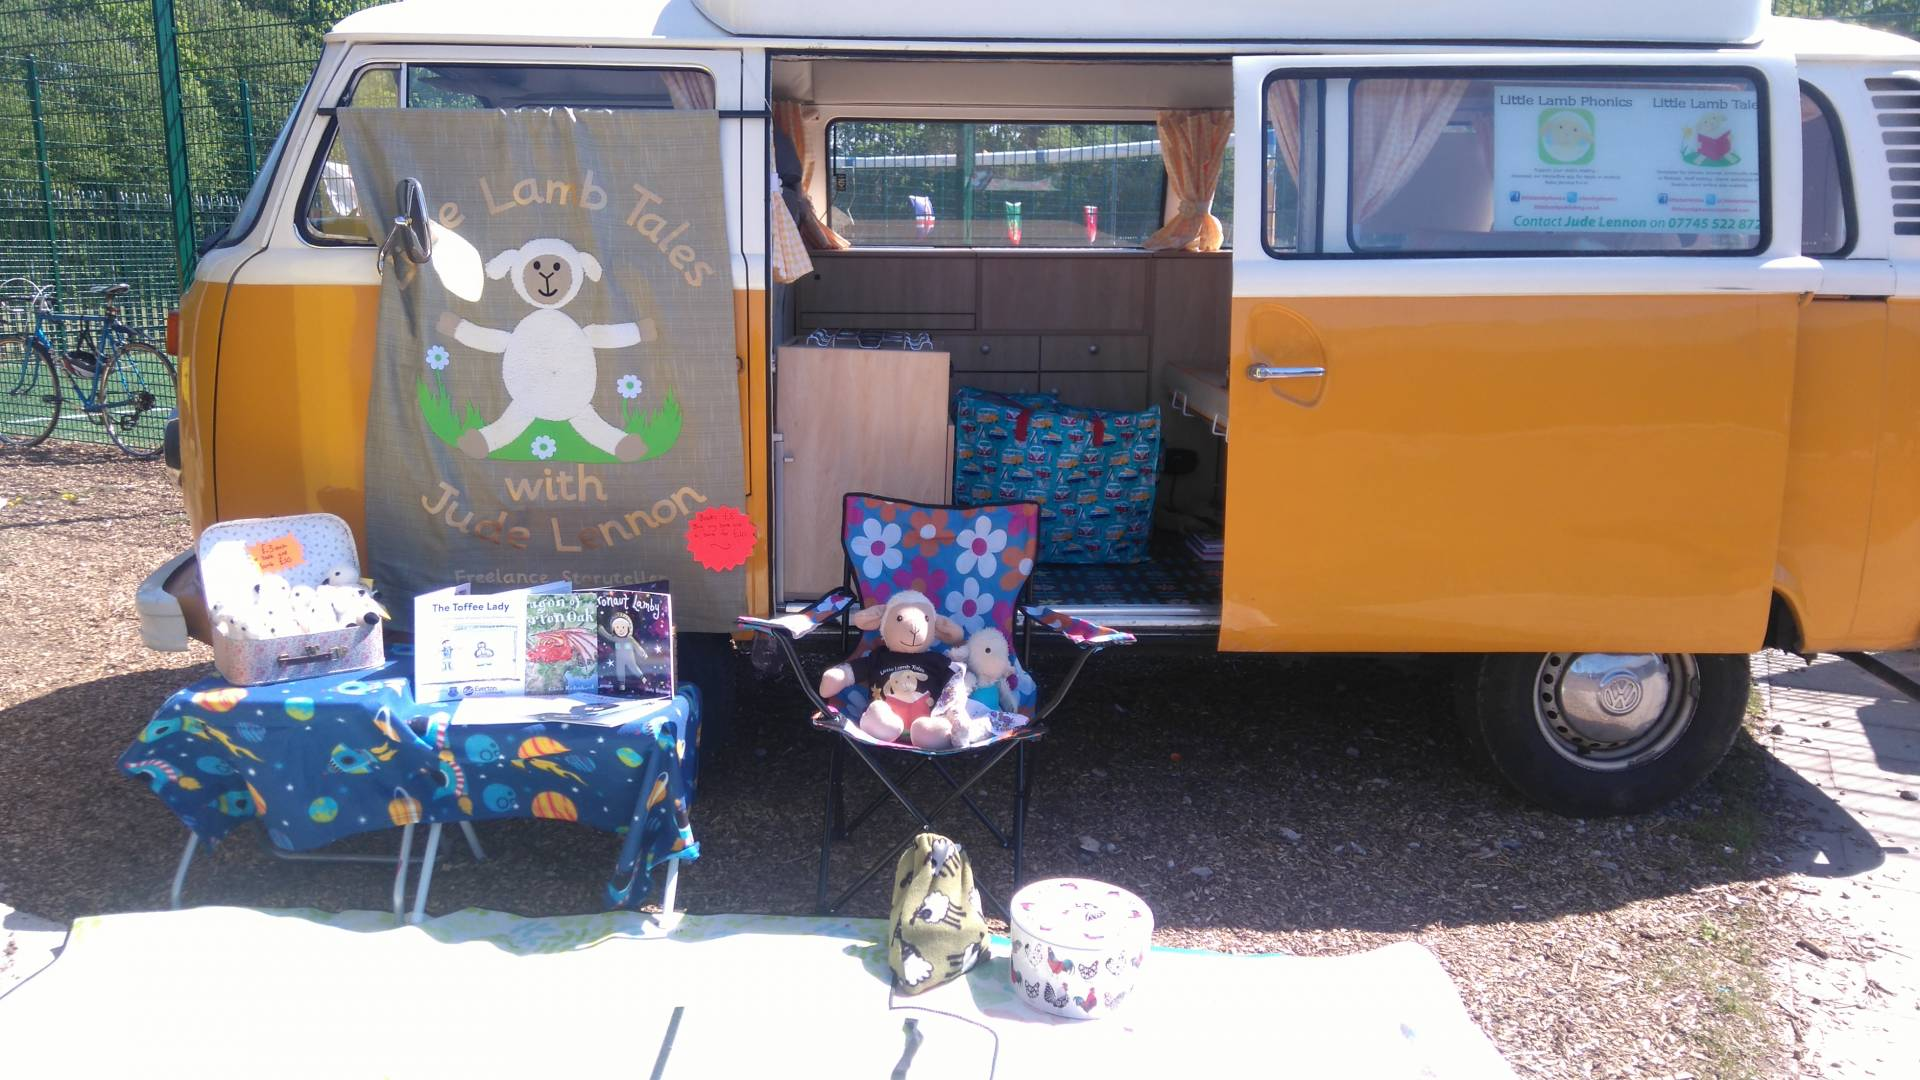 Image Of Books And Props With Camper Van